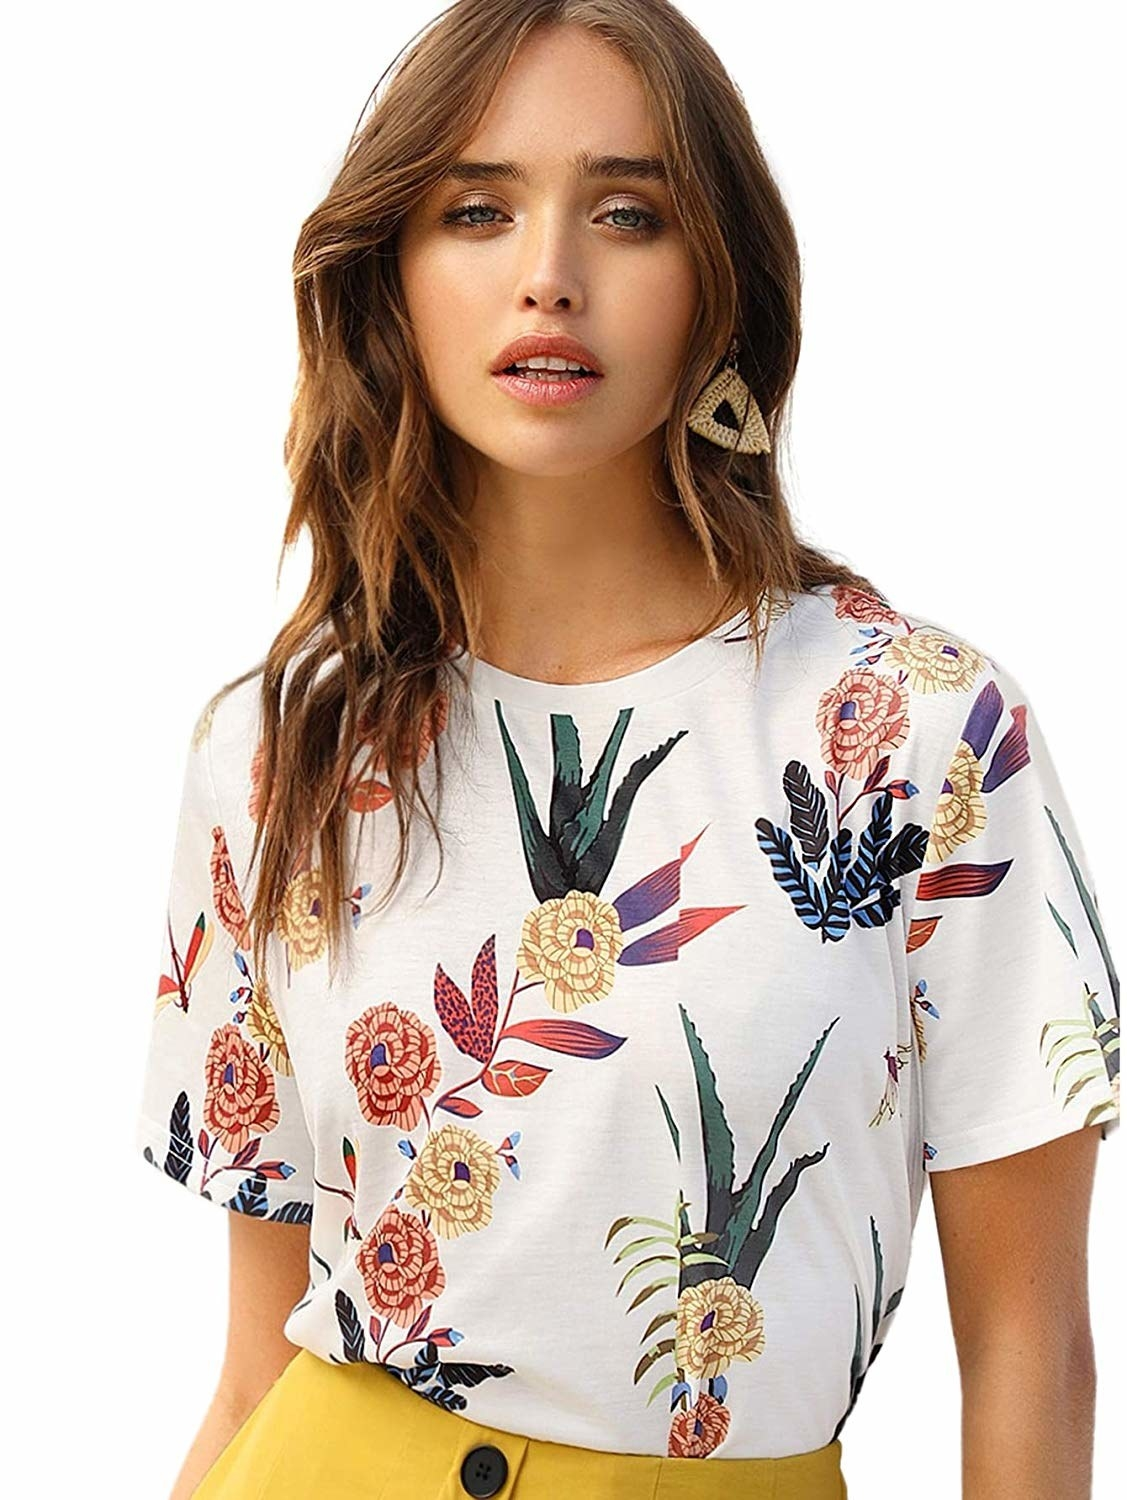 White tee with illustrated leaves and flowers in psychedelic colors and patterns